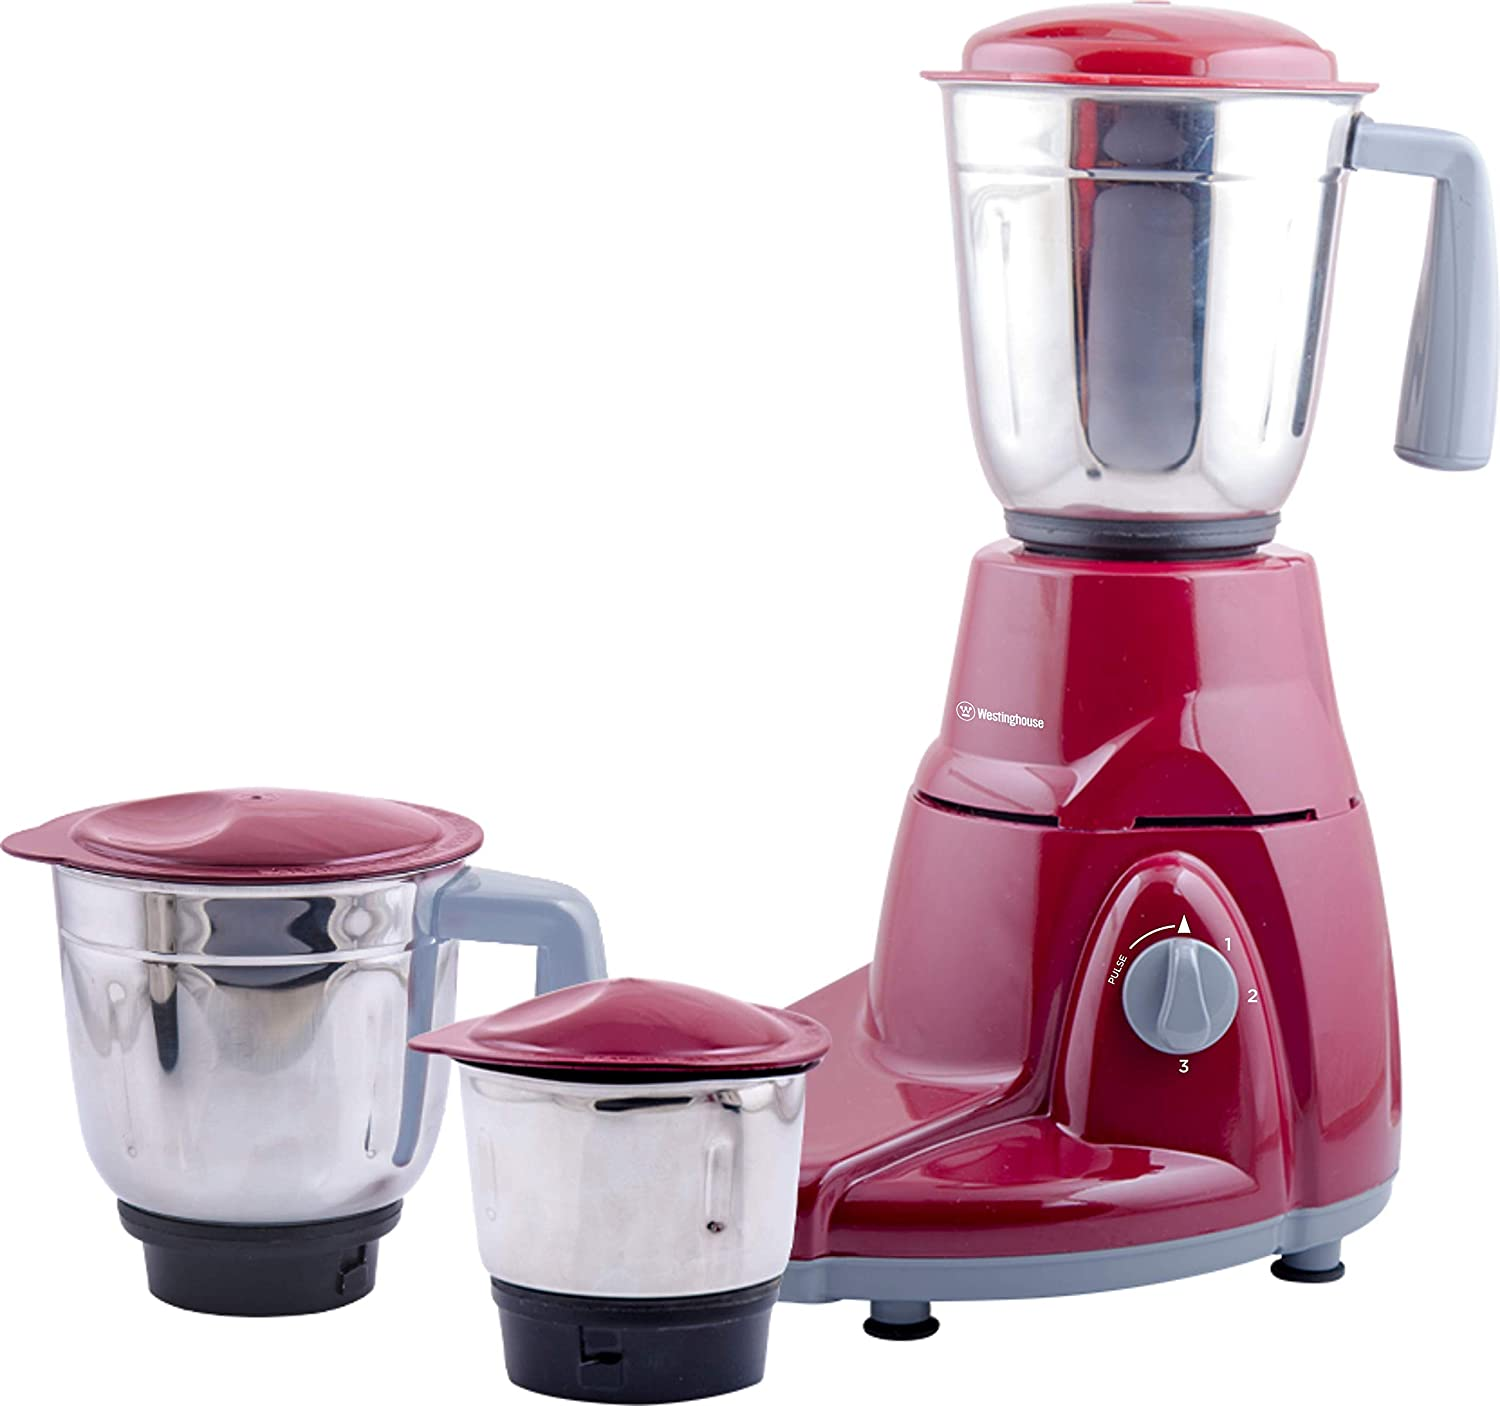 Westinghouse MG75C3A-DS 750 W Mixer grinder with 3 Jars